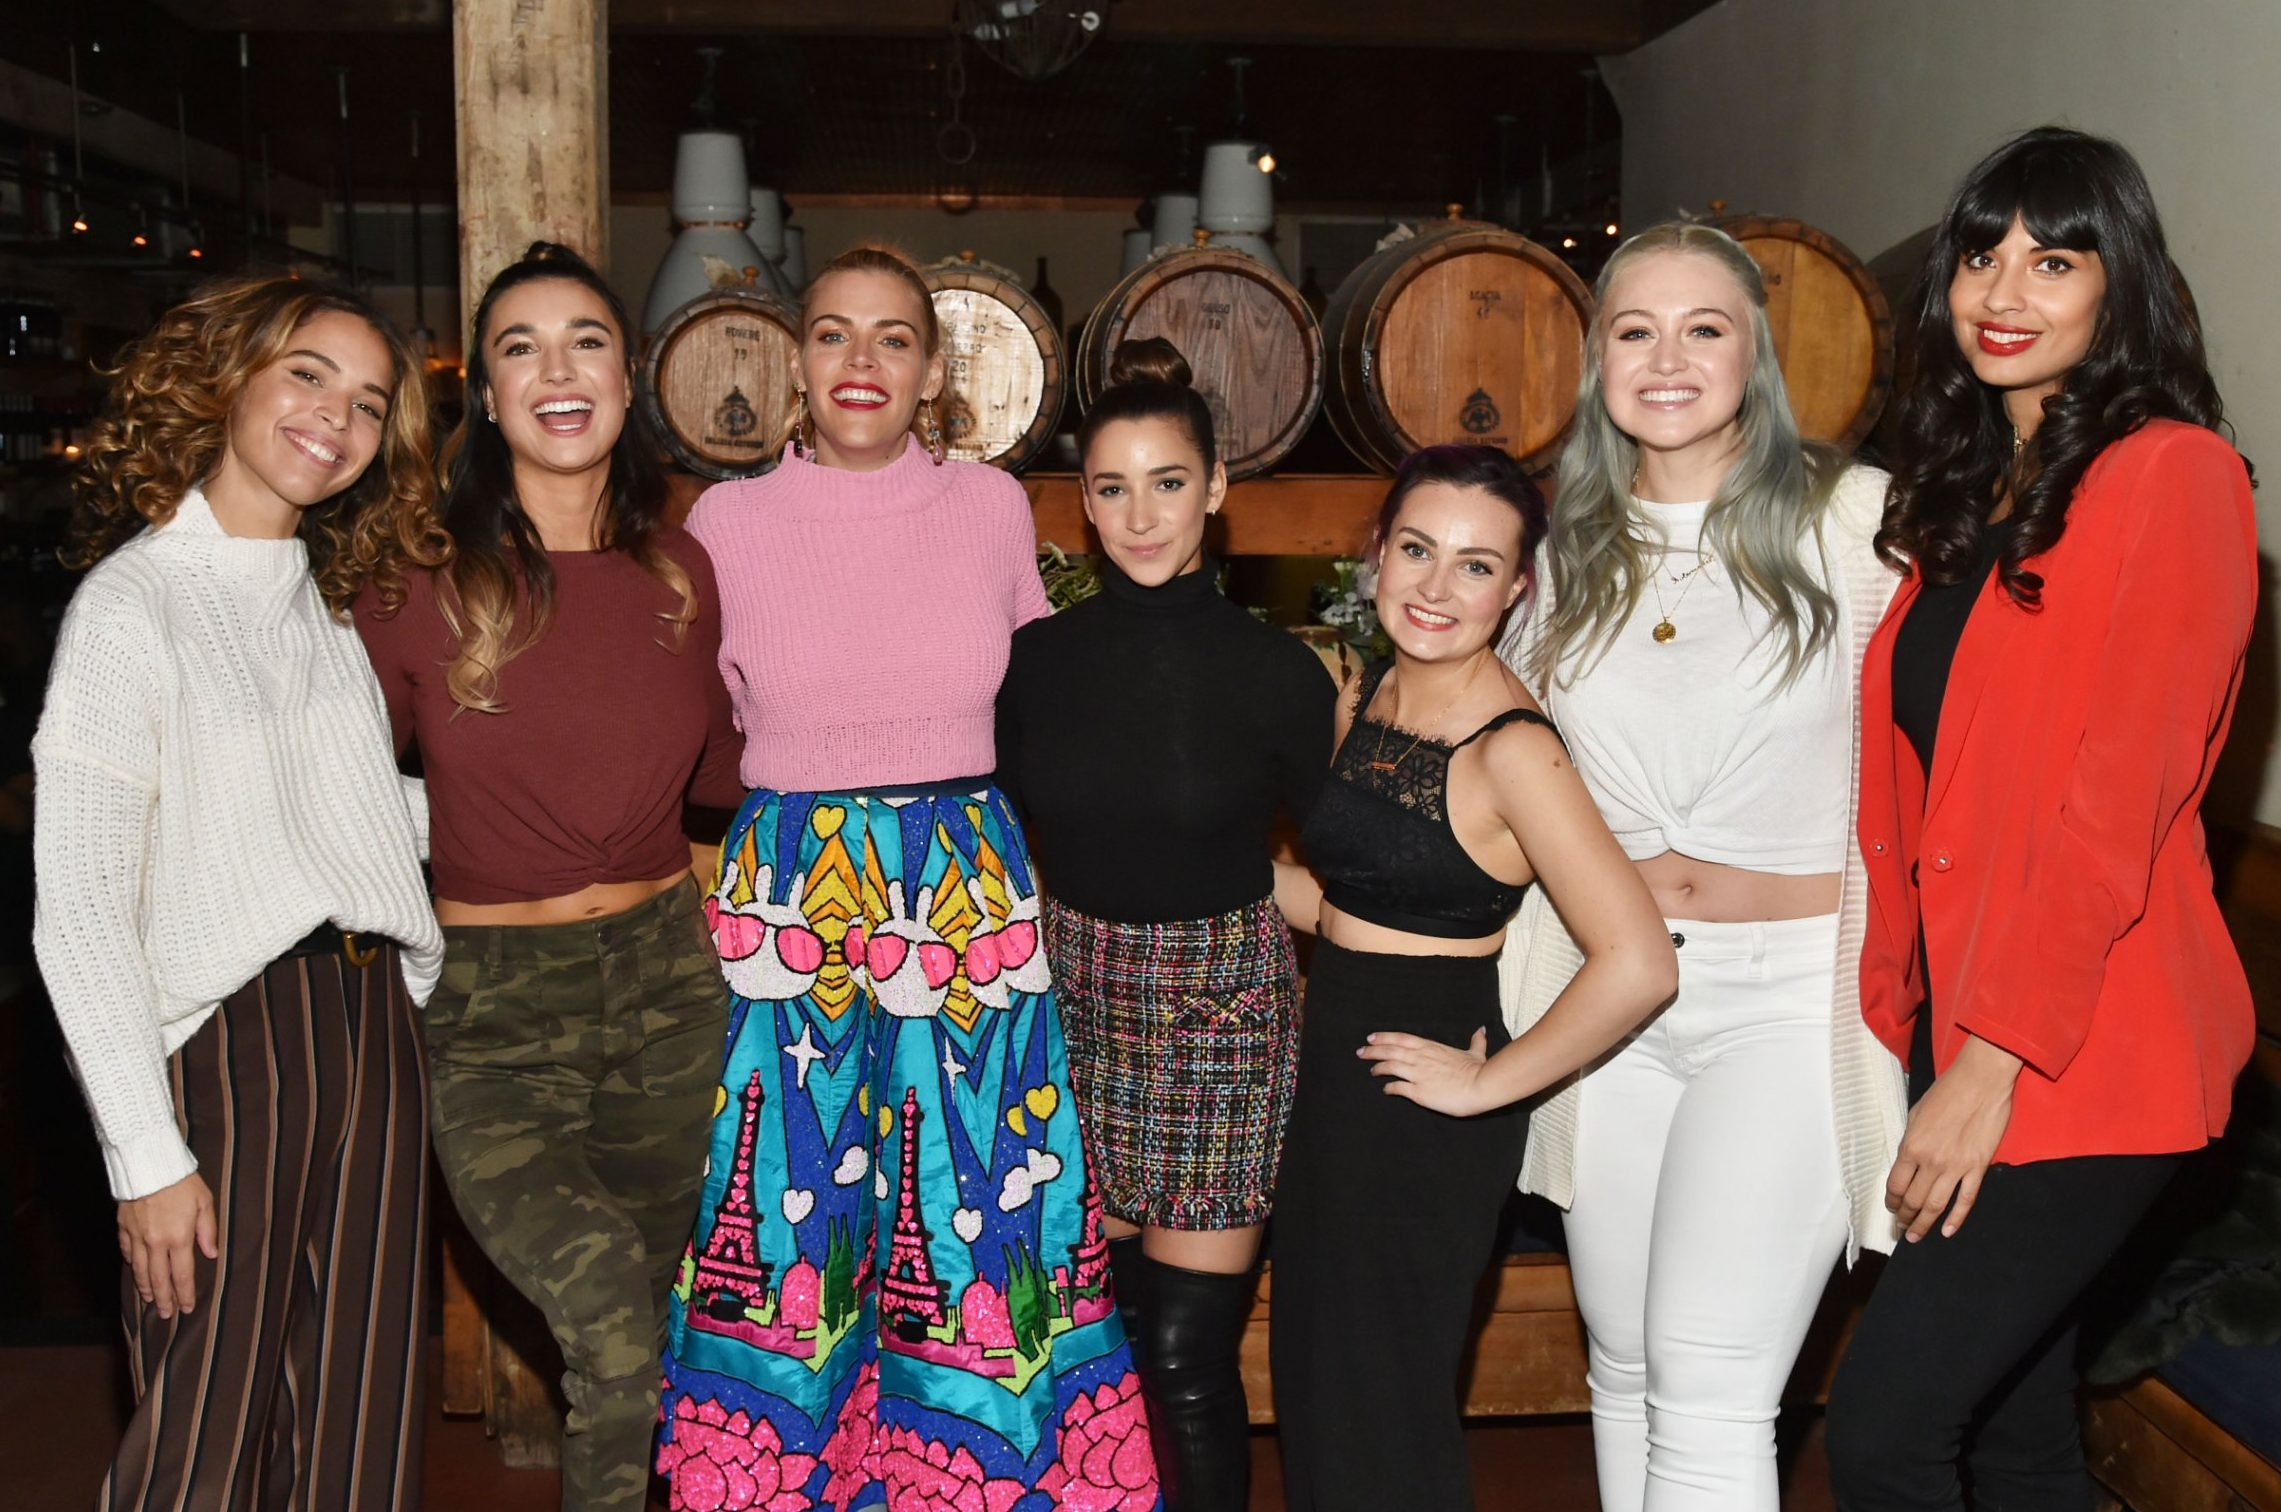 Mandatory Credit: Photo by Andrew H. Walker/WWD/REX (10080009aq) Cleo Wade, Brenna Huckaby, Busy Philipps, Aly Raisman, Molly Burke, Iskra Lawrence, and Jameela Jamil Aerie 'Changing the Course' Dinner, New York, USA - 31 Jan 2019